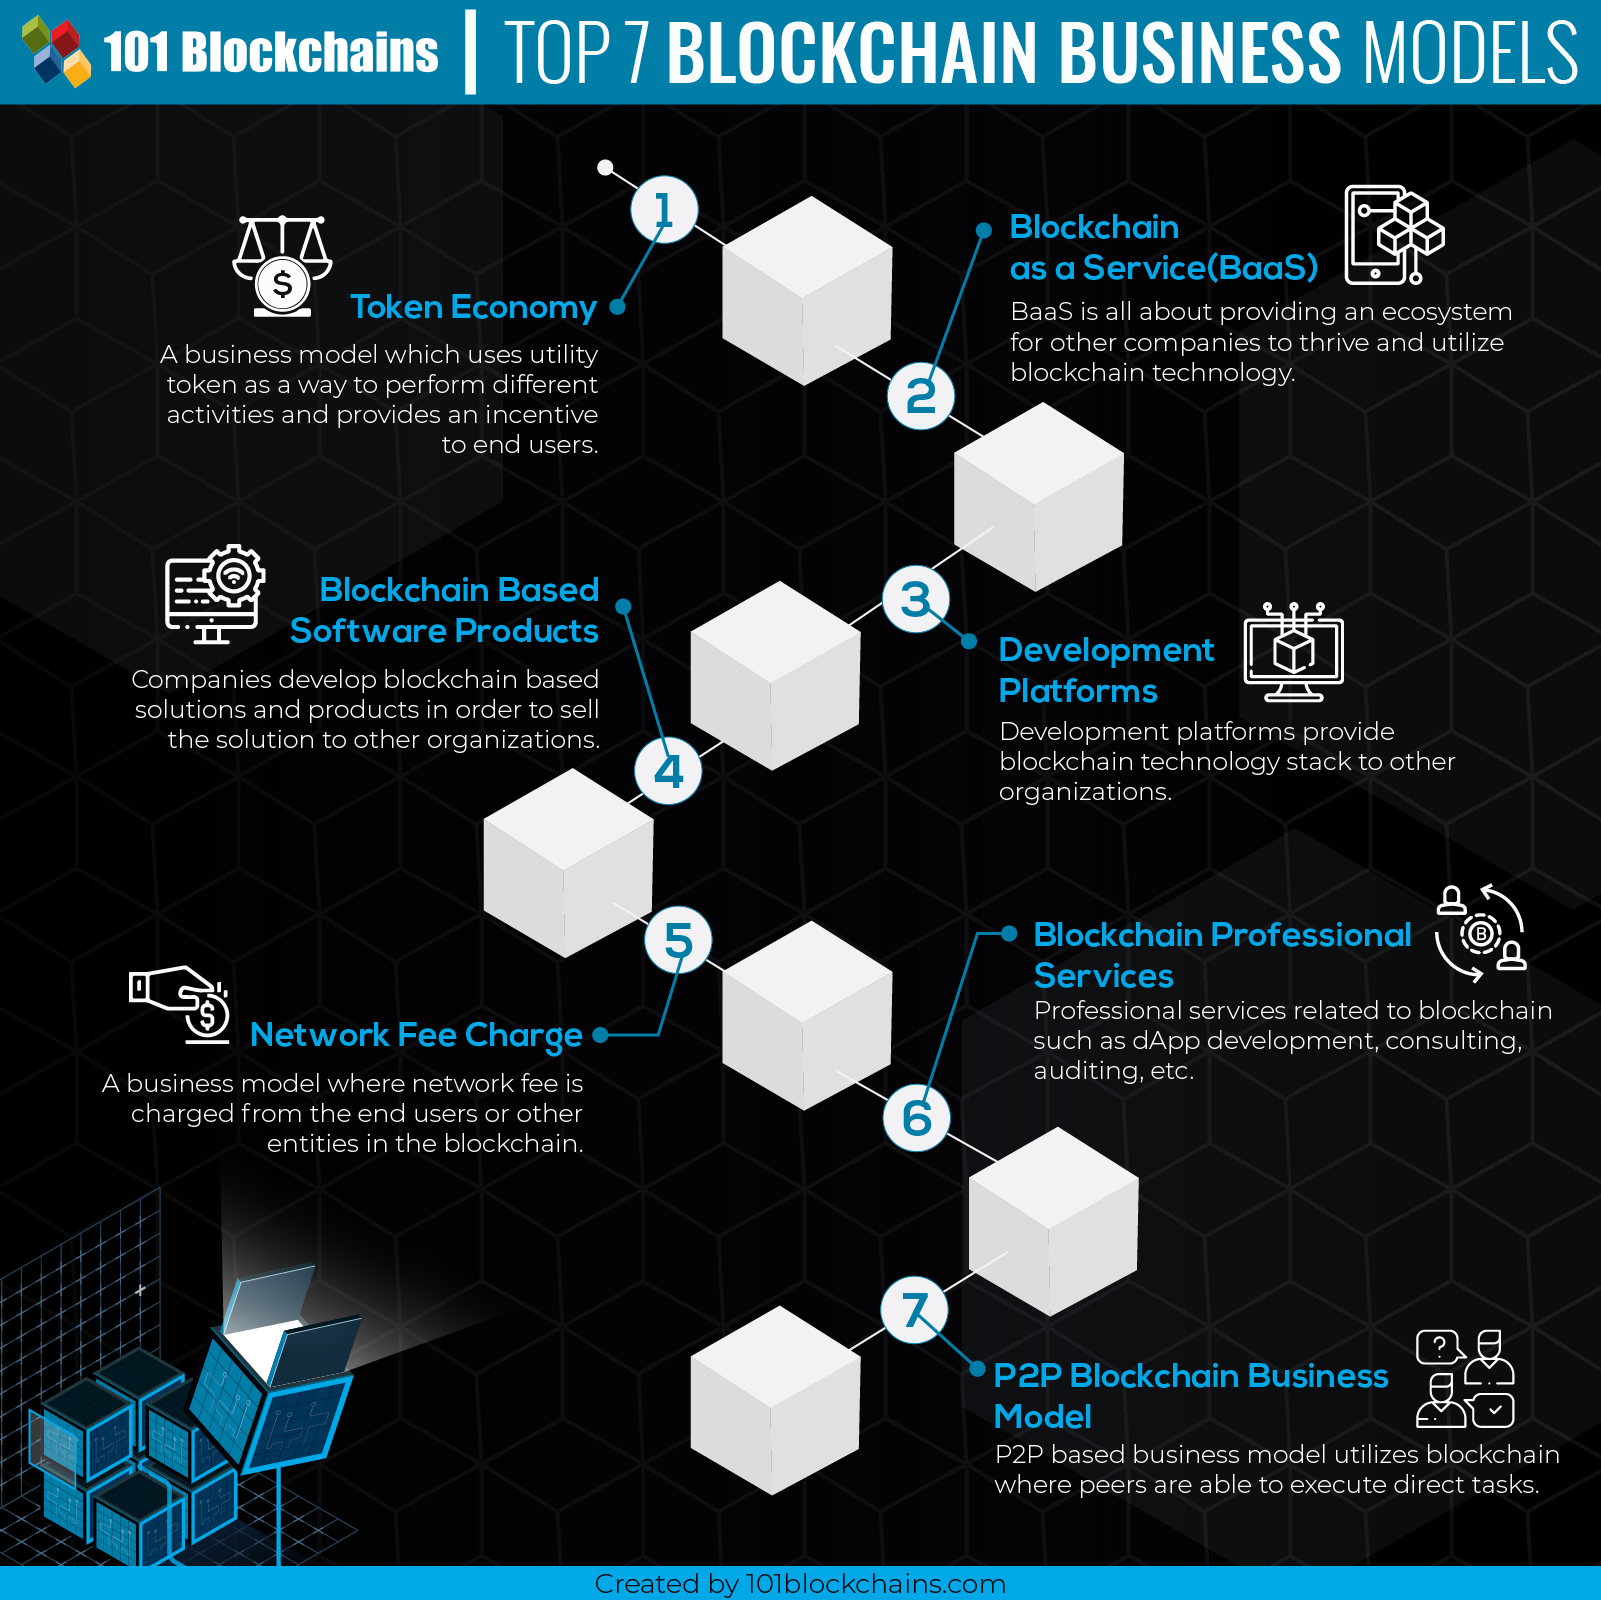 Blockchain Business Models new